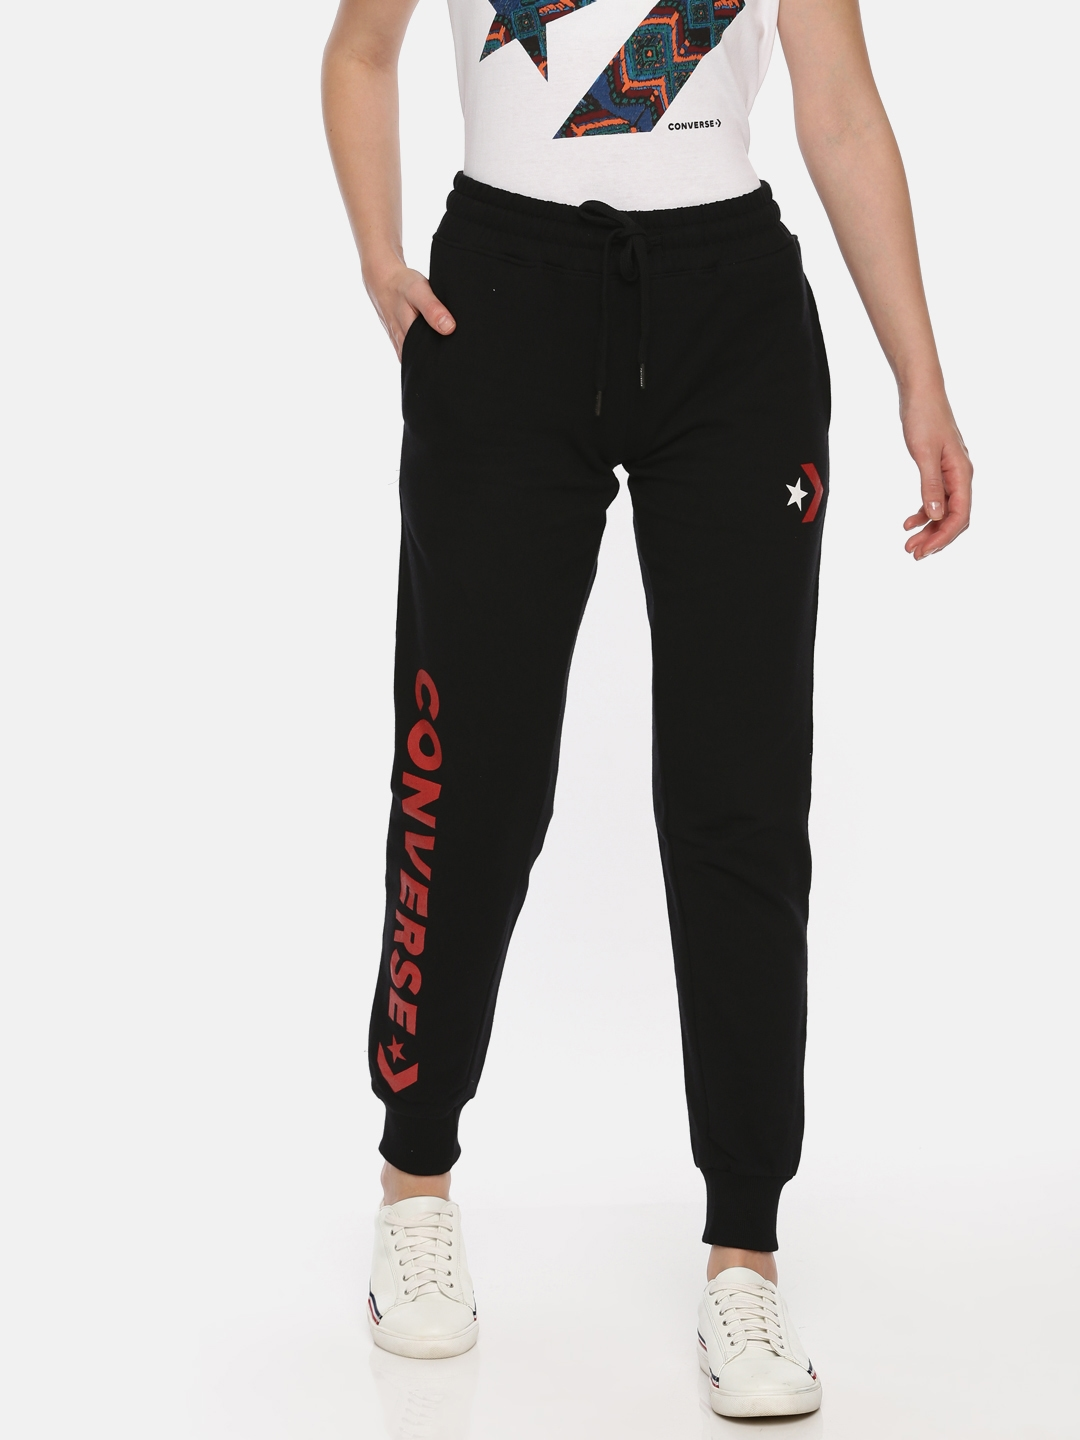 30b3ca72e48b Buy Converse Women Black Solid Joggers - Track Pants for Women ...